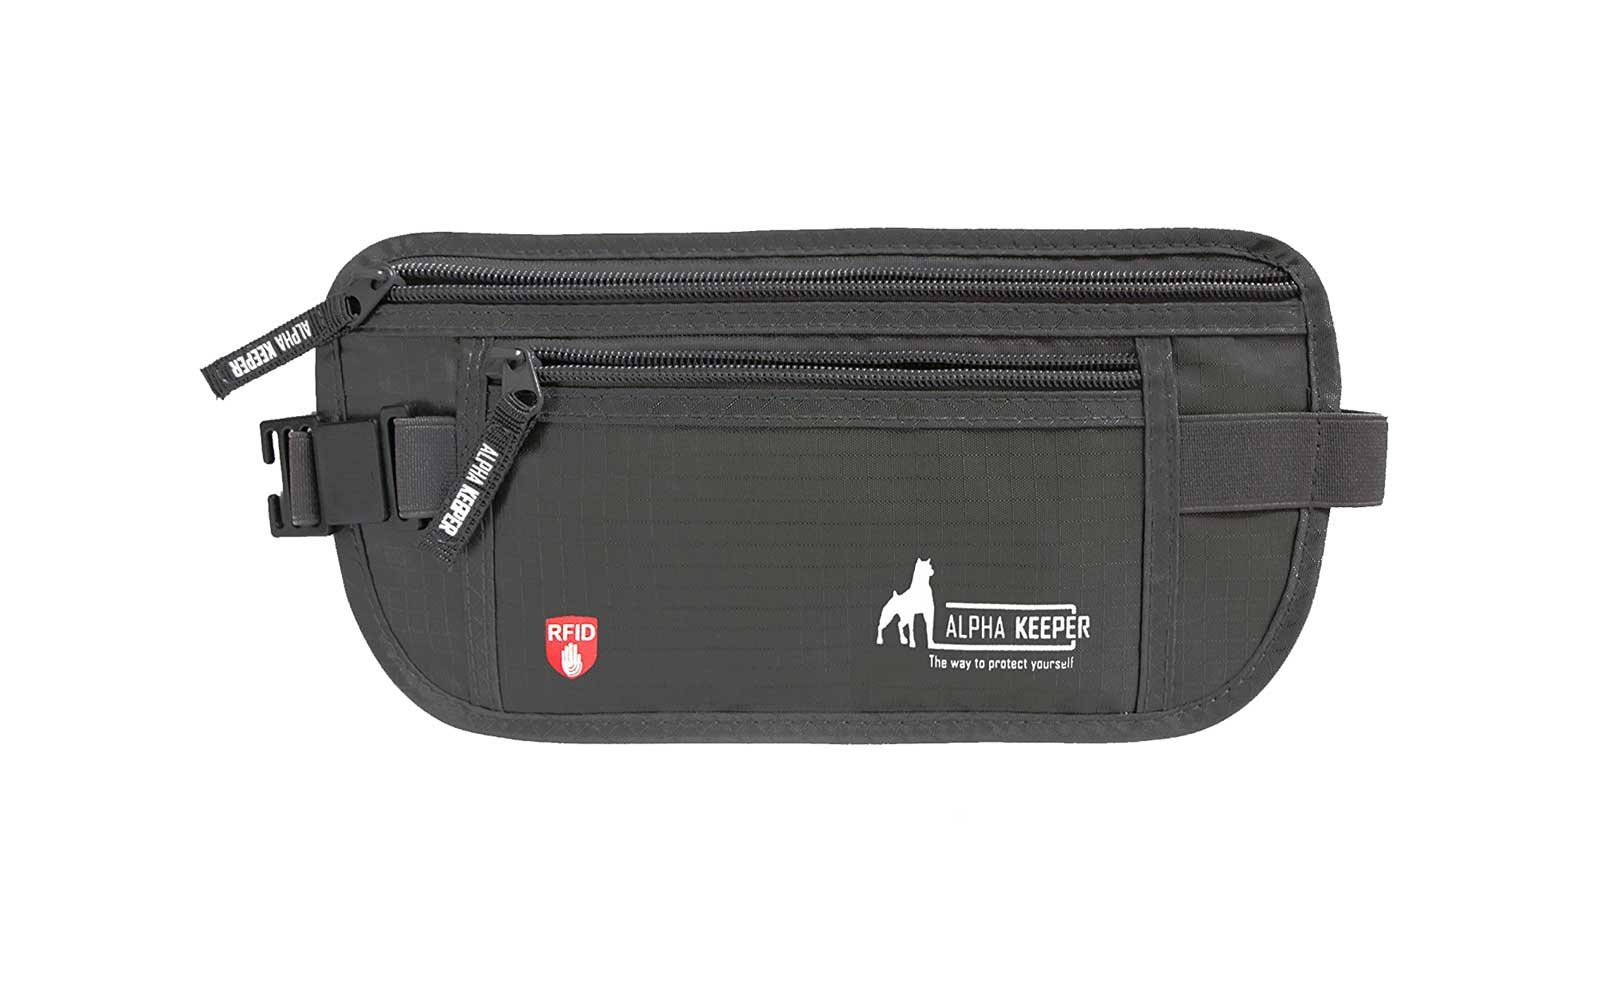 Alpha Keeper- Rfid Money Belt